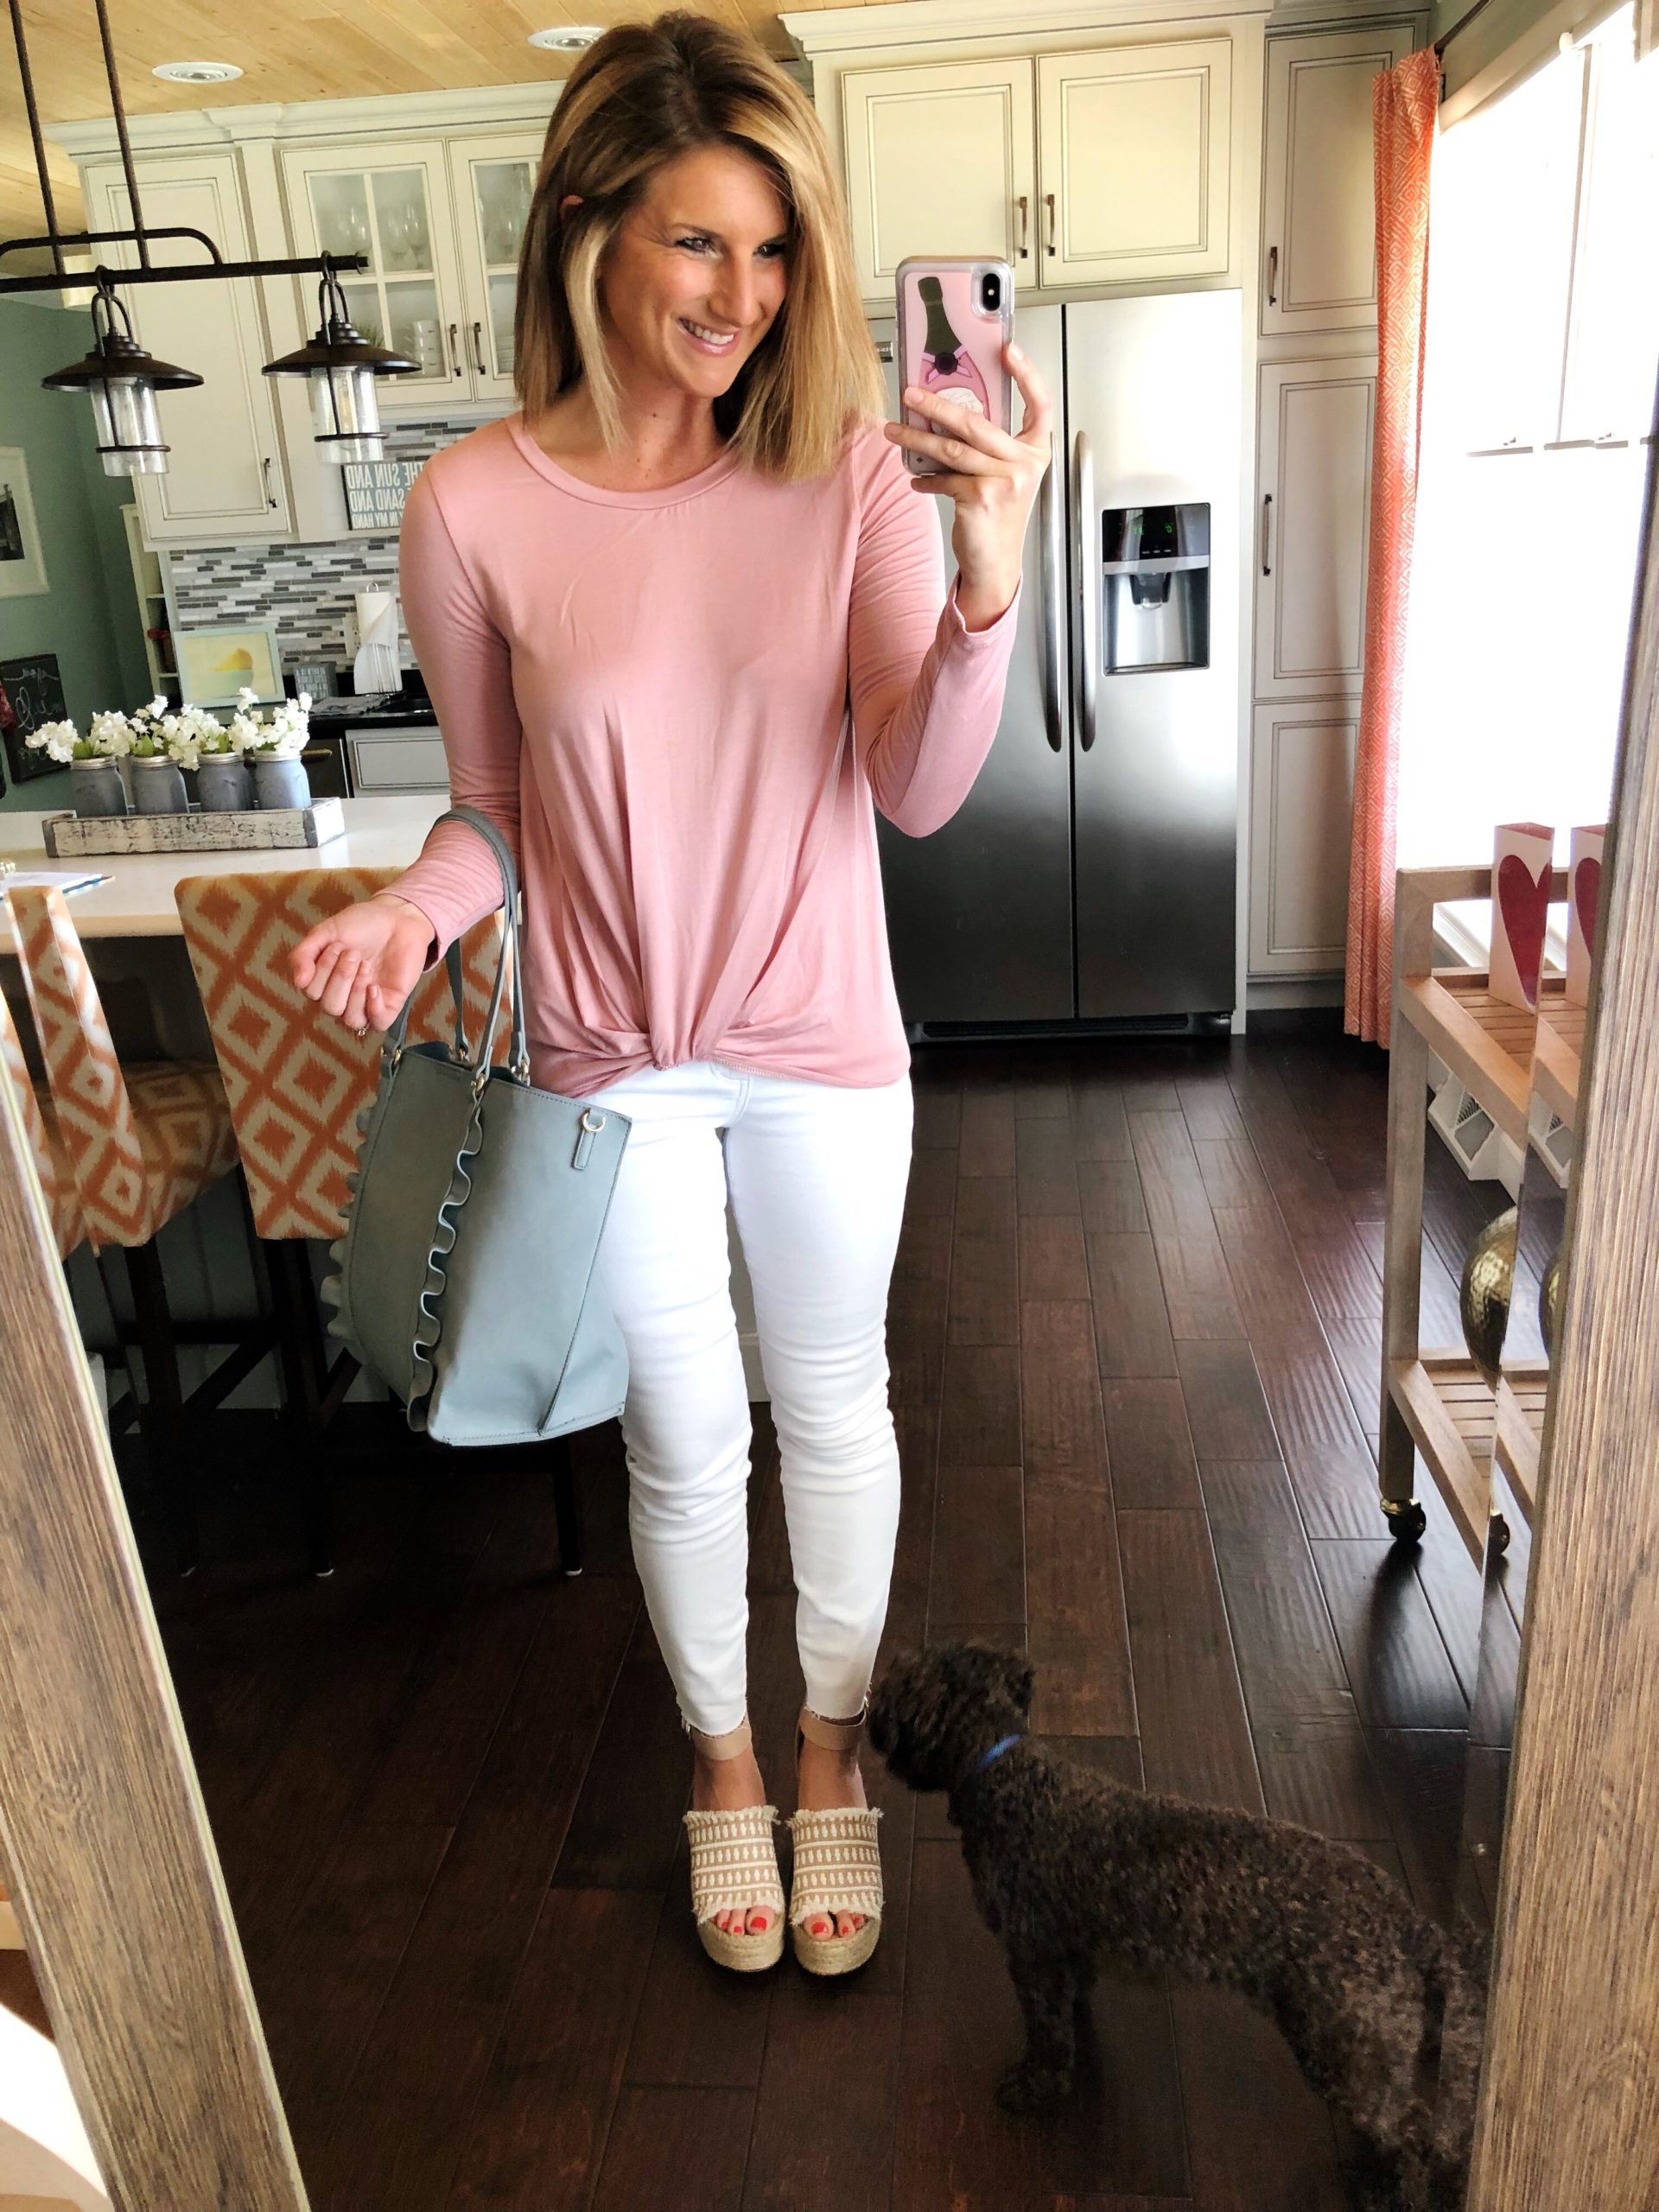 Twist Hem Top + White Skinny Jeans + Espadrille Sandals // Spring Fashion